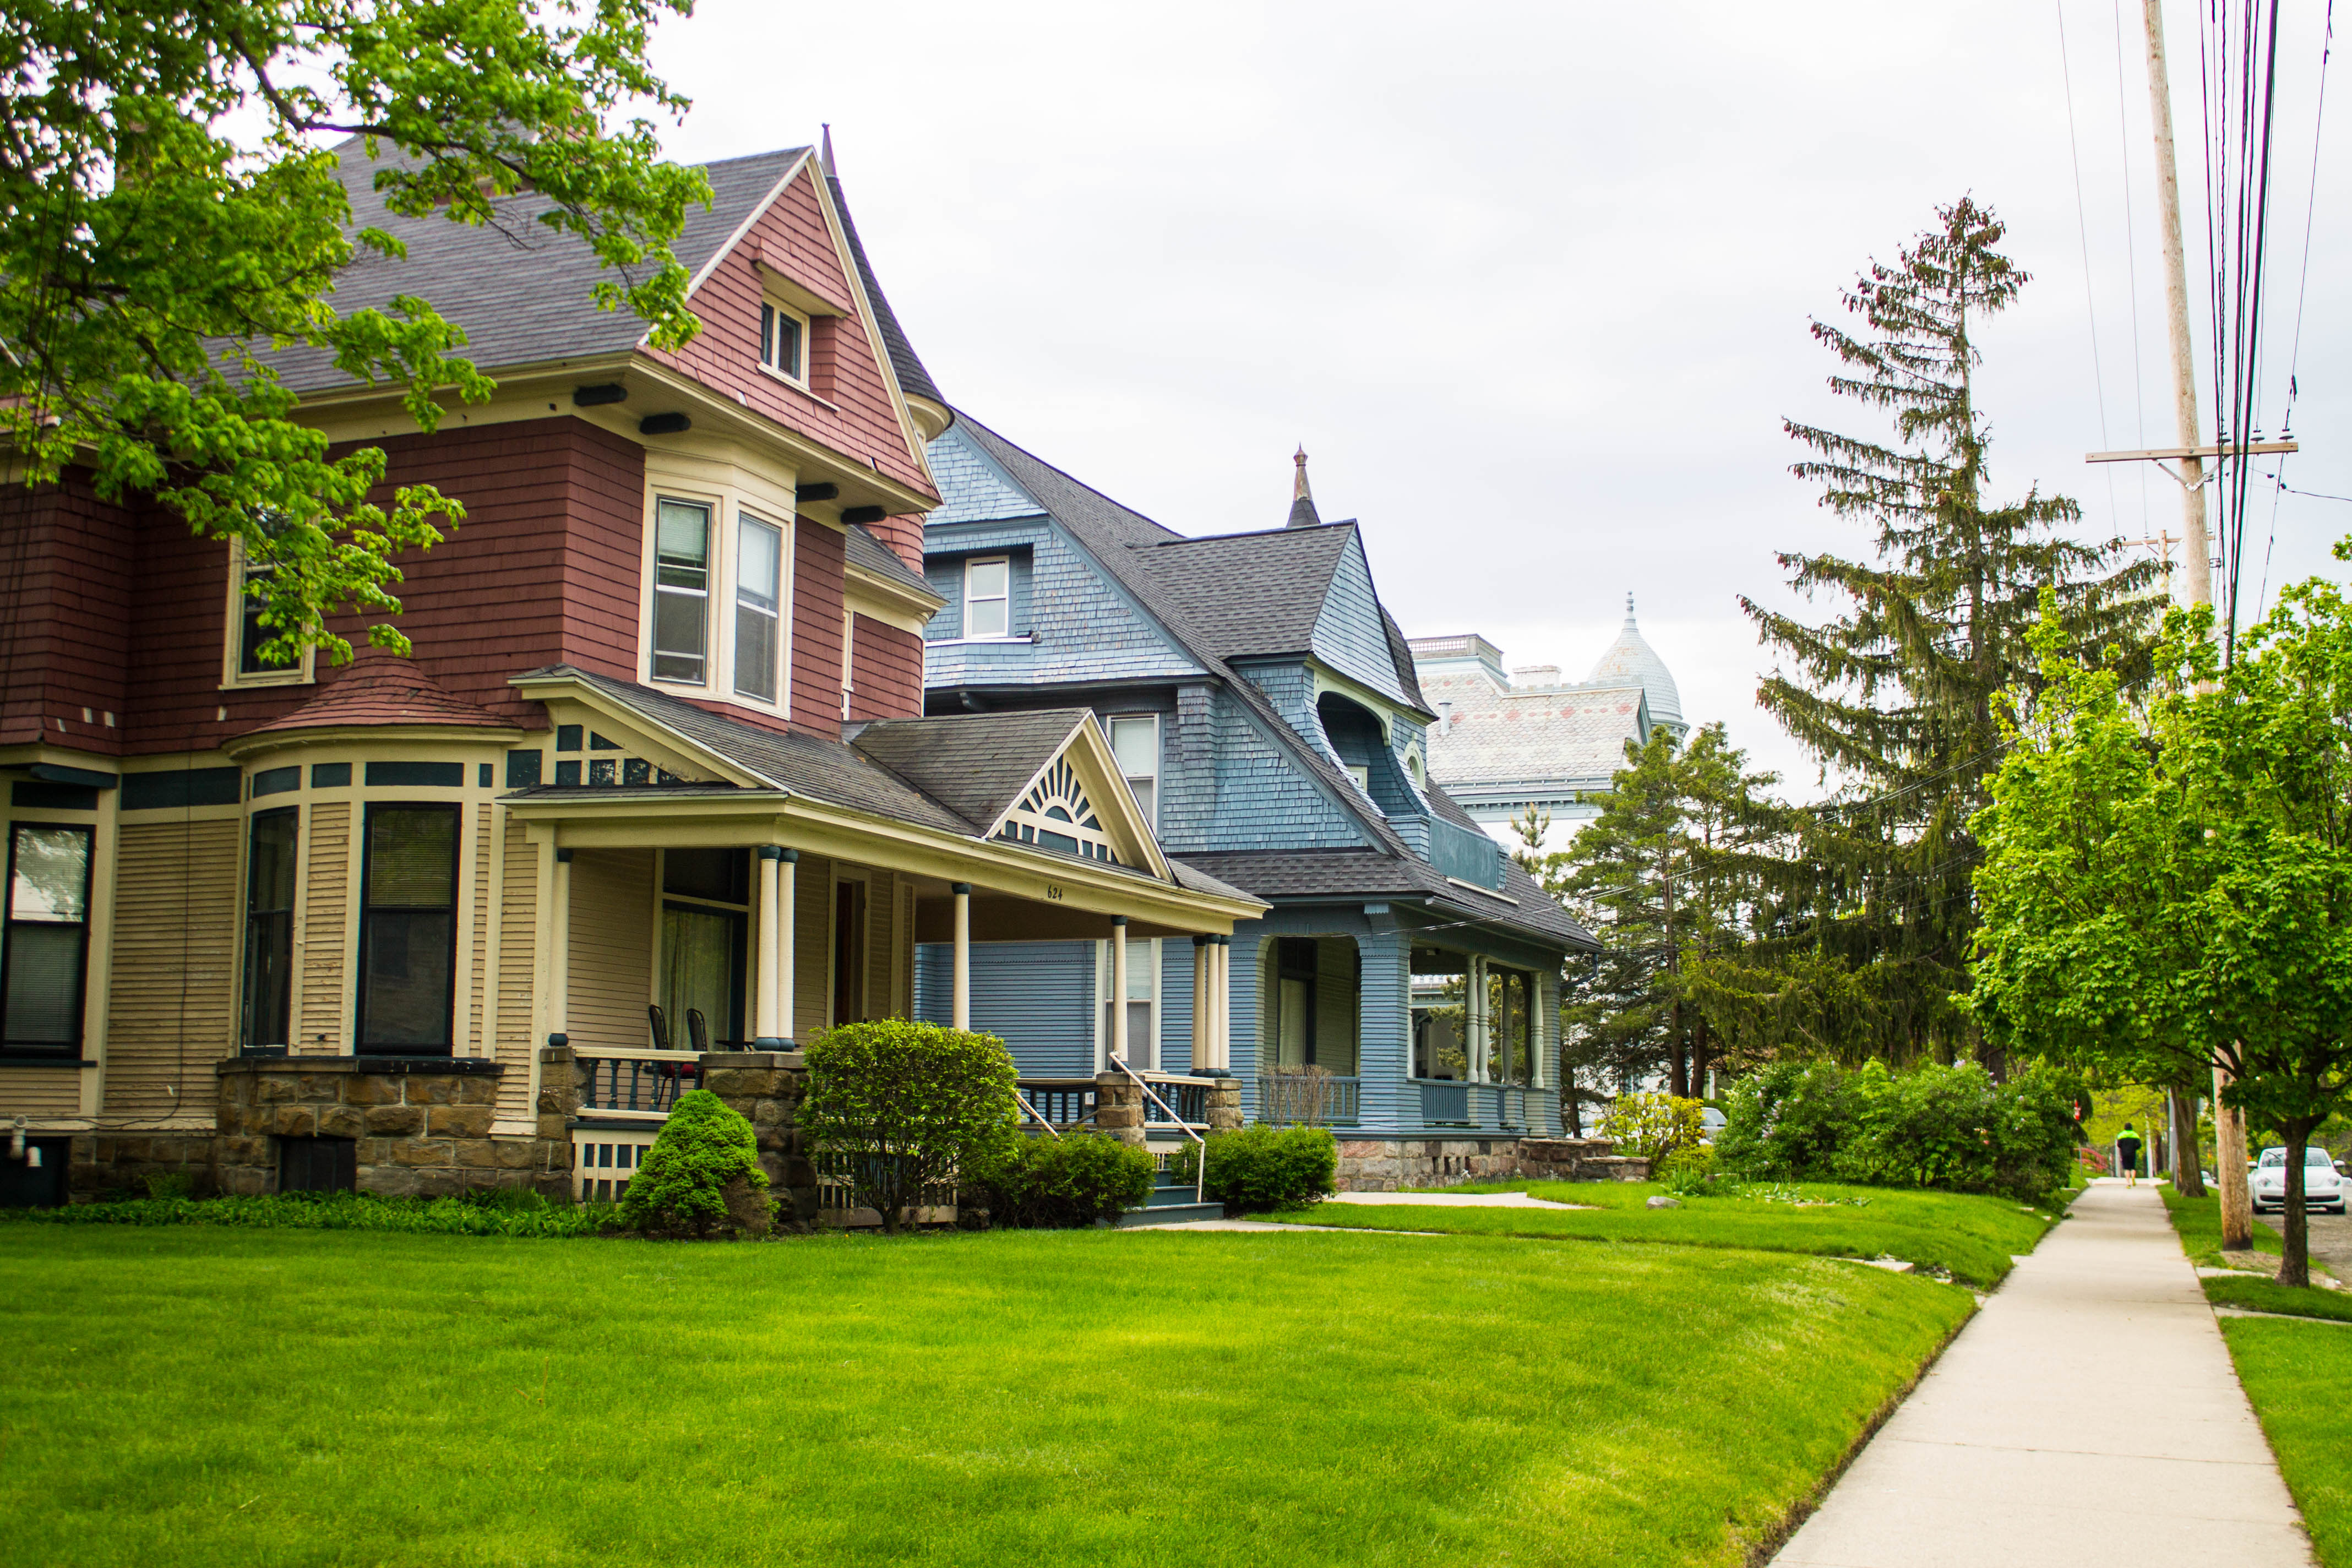 Cherry Hill Historic District in Grand Rapids, Michigan